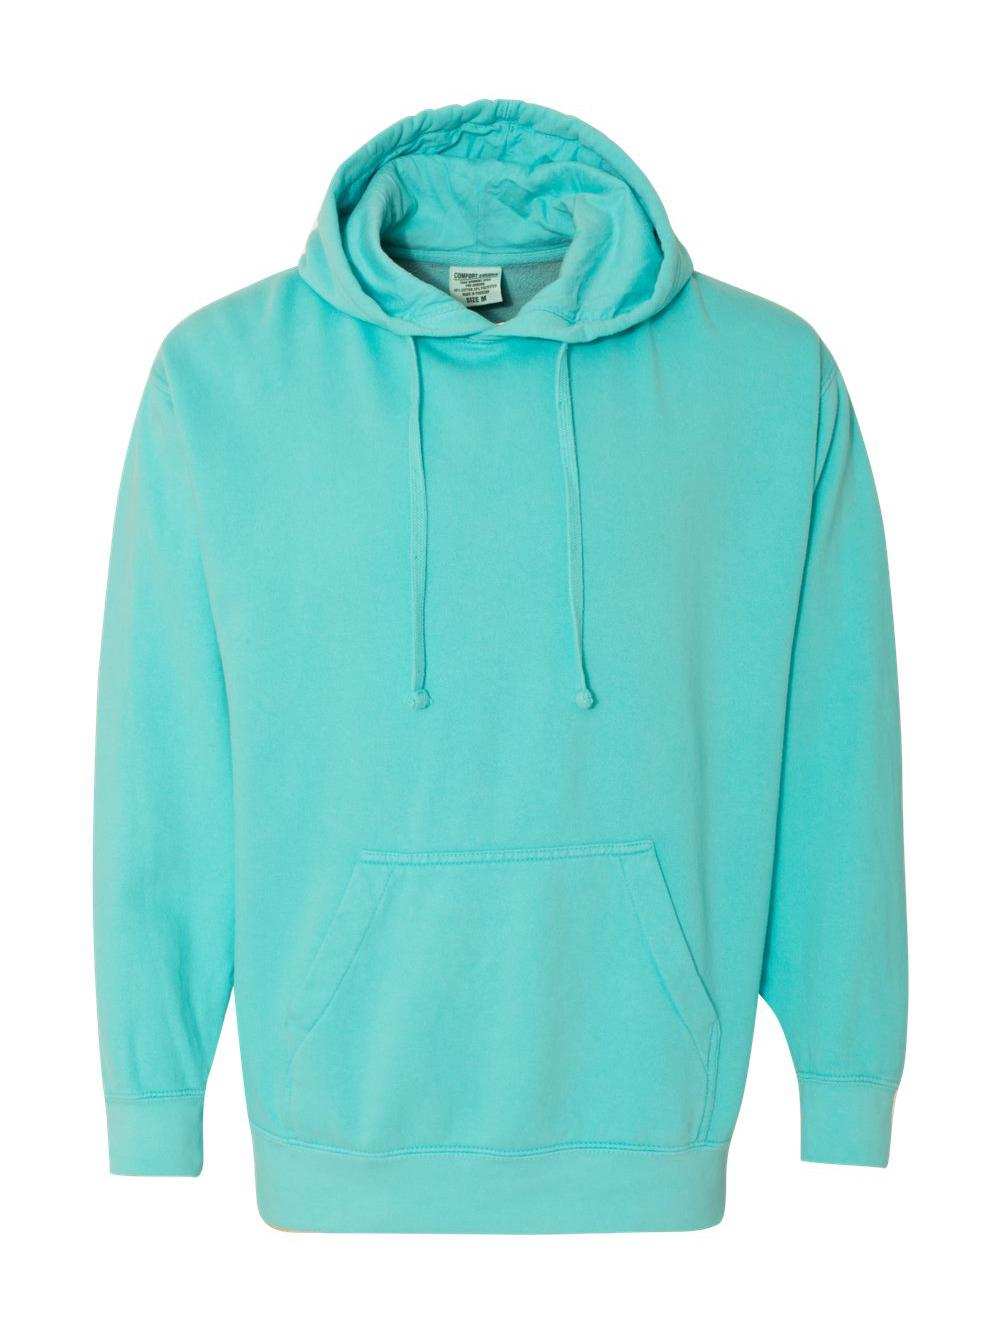 Comfort-Colors-Garment-Dyed-Hooded-Pullover-Sweatshirt-1567 thumbnail 21